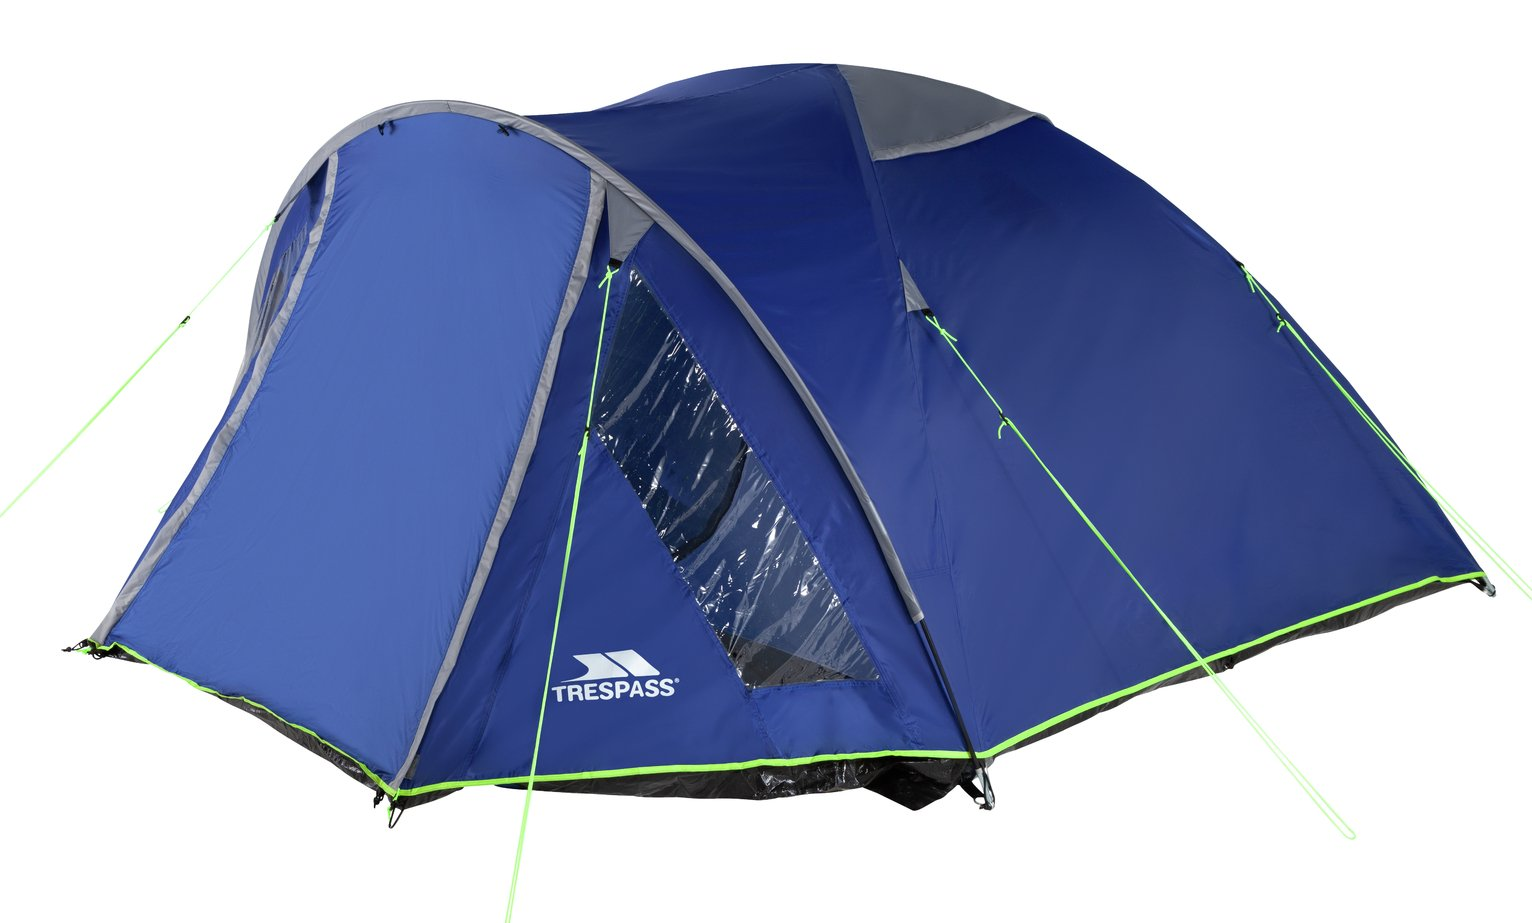 Trespass 4 Man 1 Room Dome Camping Tent